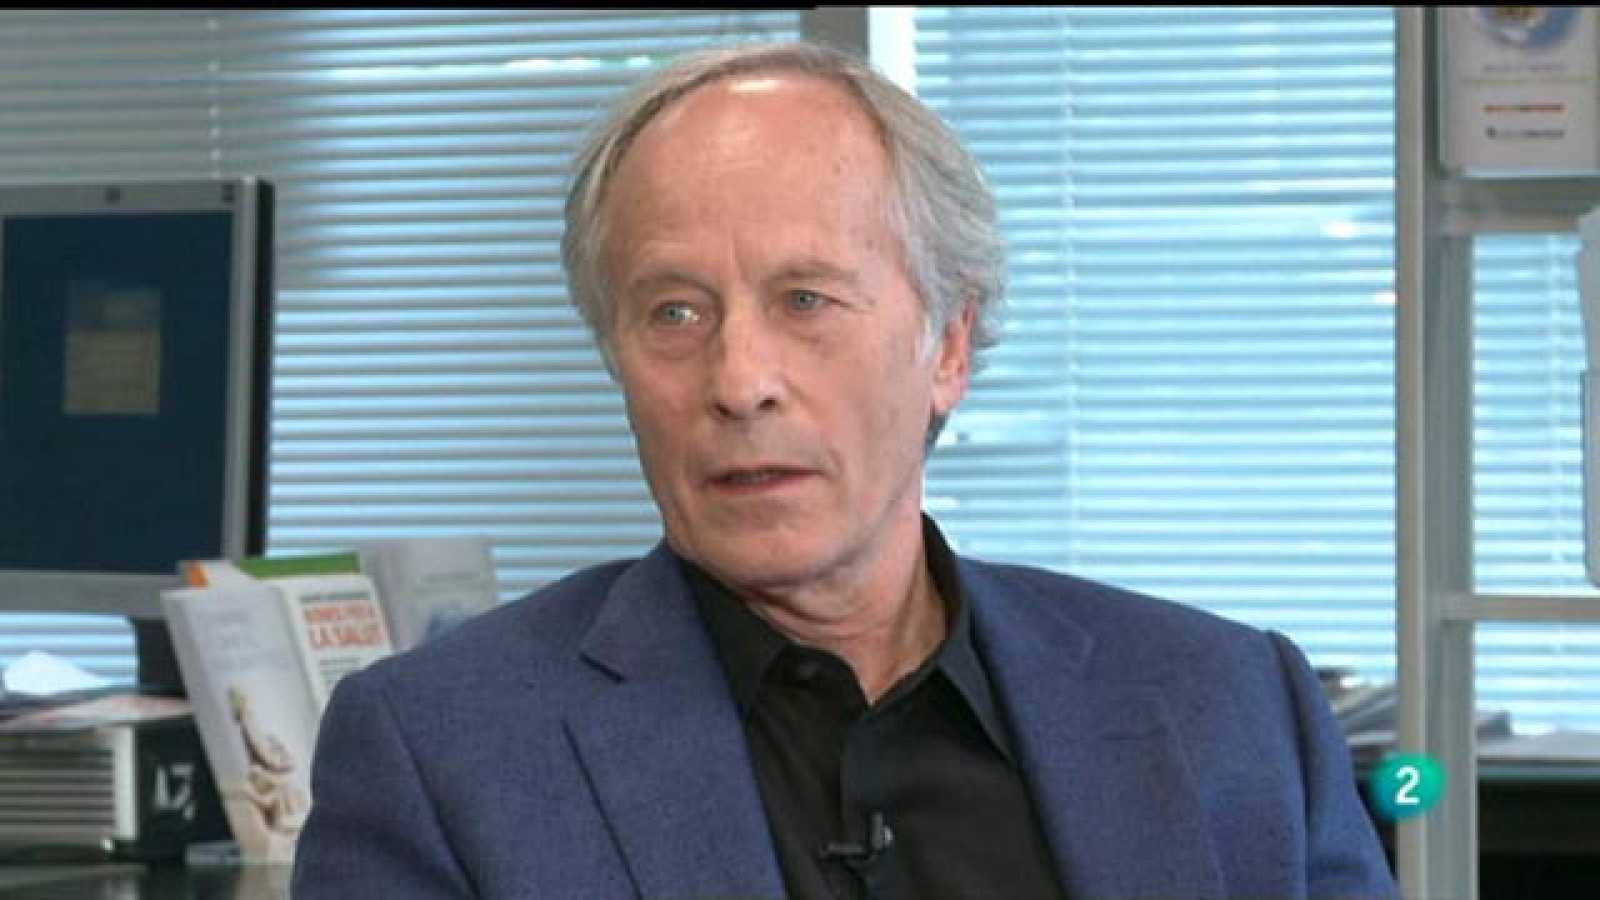 Página 2 - Entrevista a Richard Ford